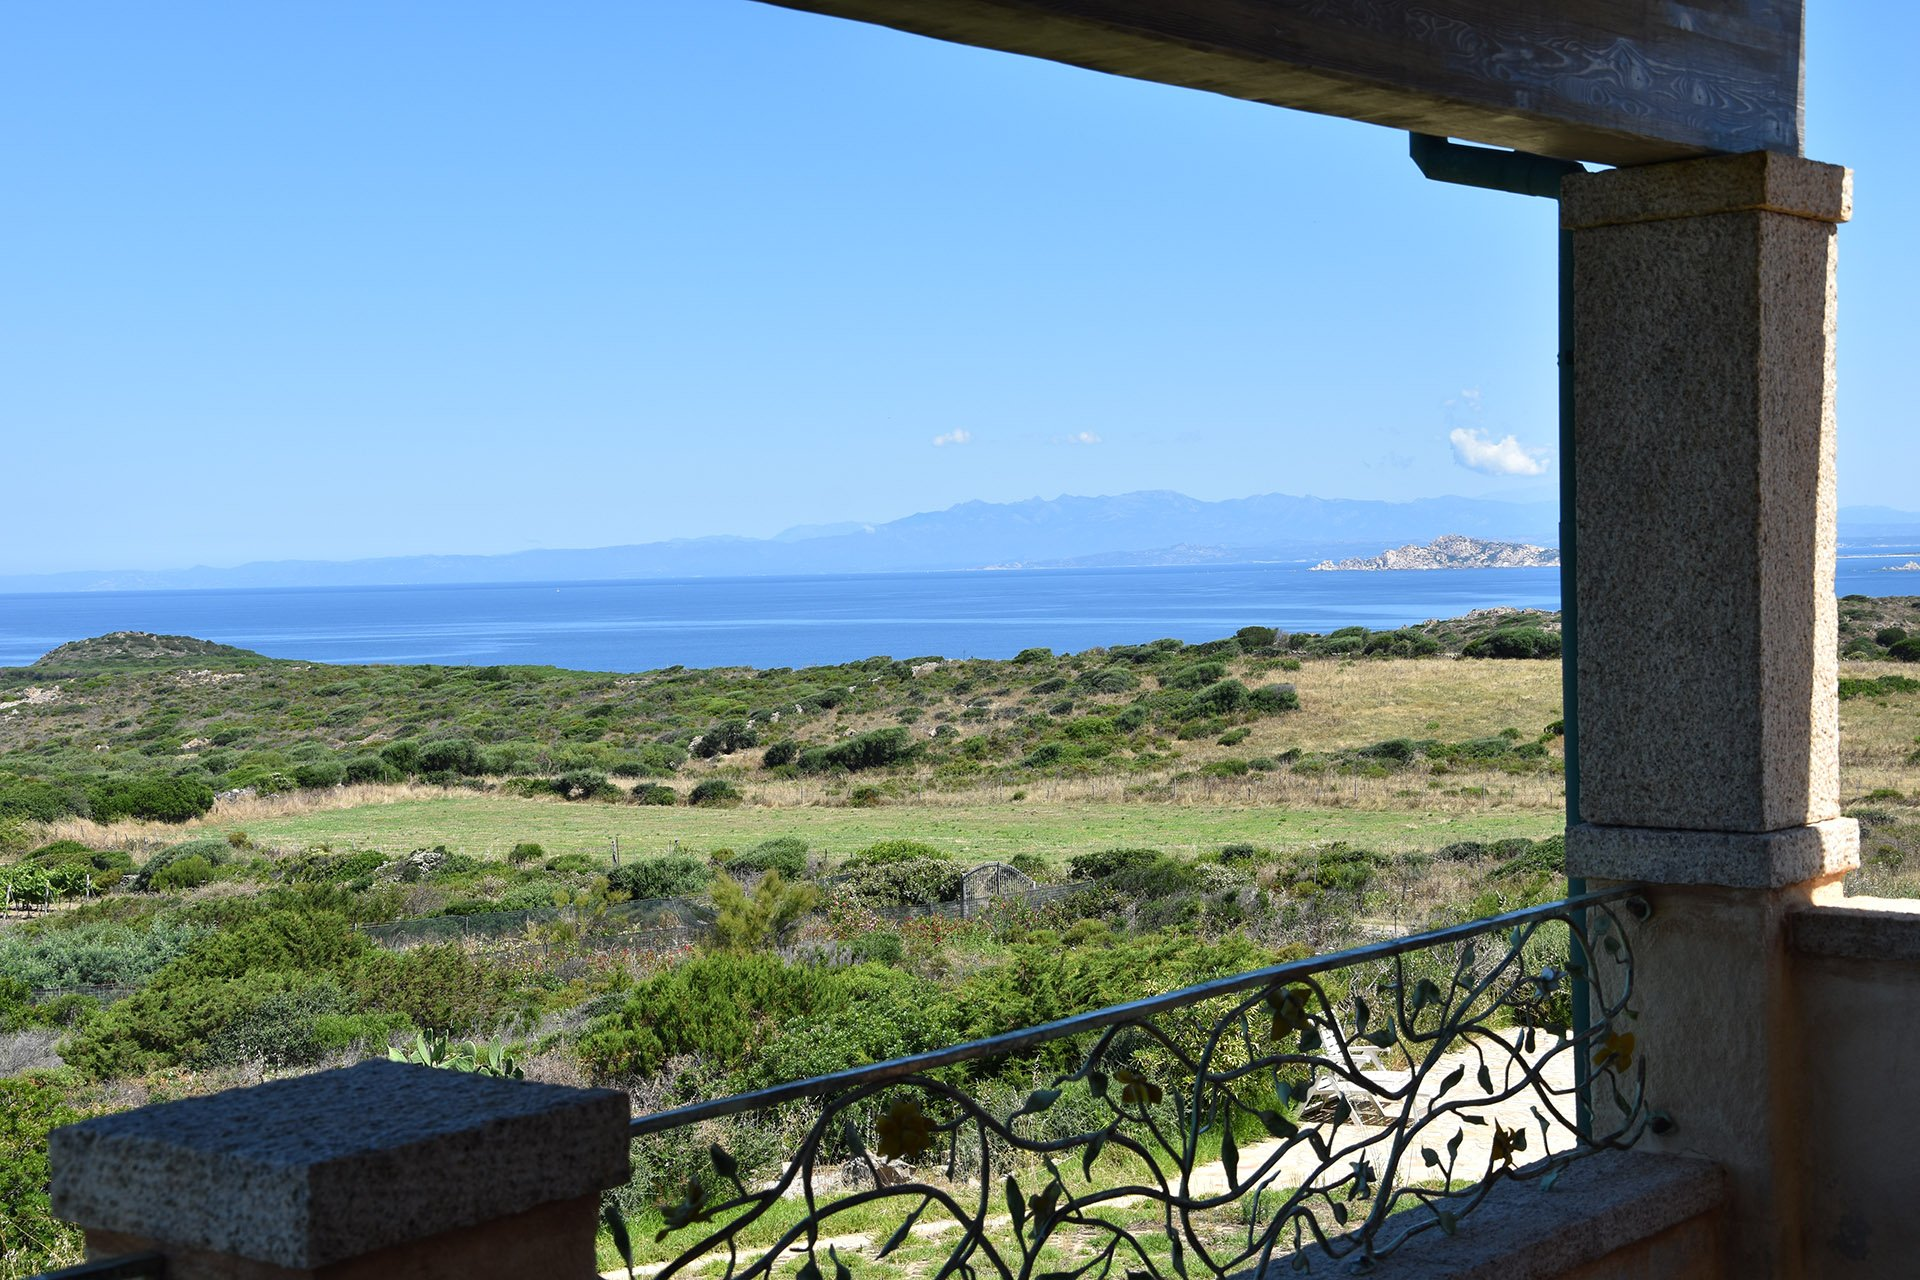 Breathtaking sea view house for sale in Sardinia, Monti Russo beach nearby